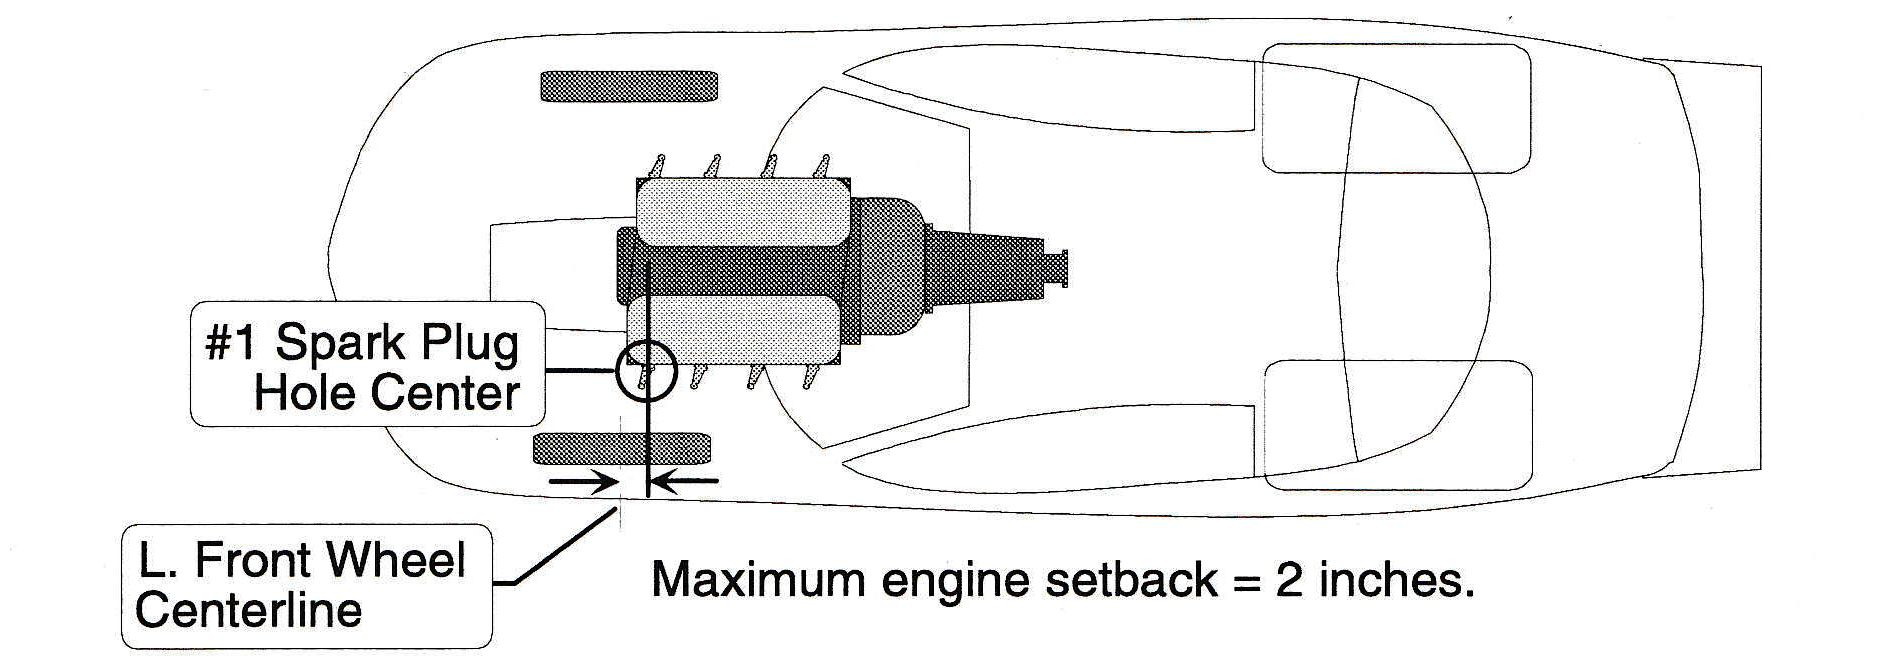 A Little Setback Engine Mounting Strategies For Drag Racing Drag Racing Setback Rear Wheel Drive